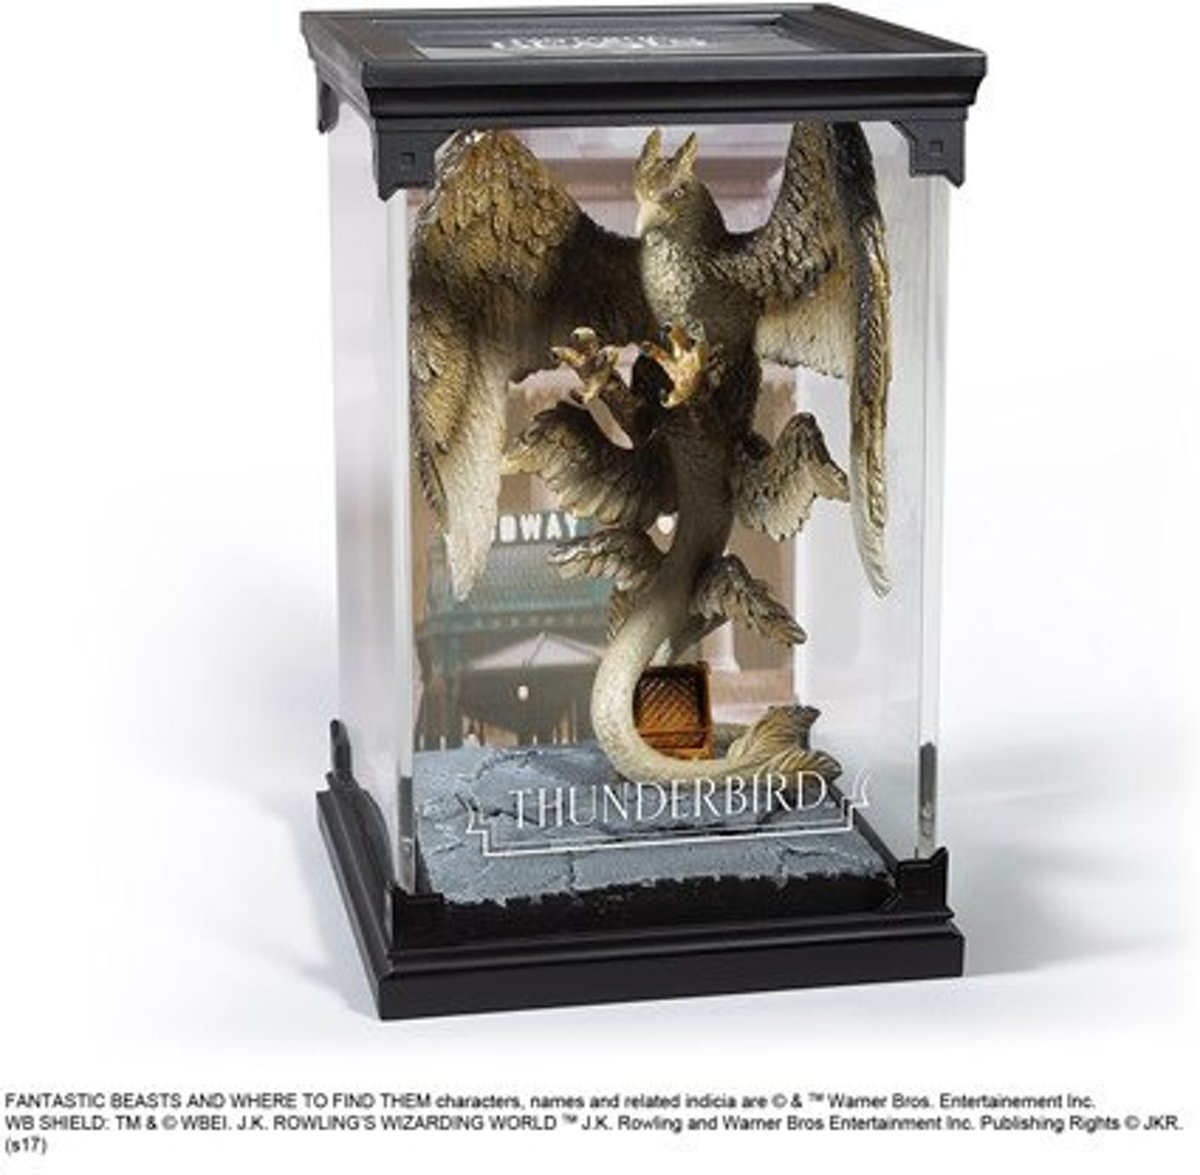 Magical creatures - Thunderbird - Fantastic Beasts figurine